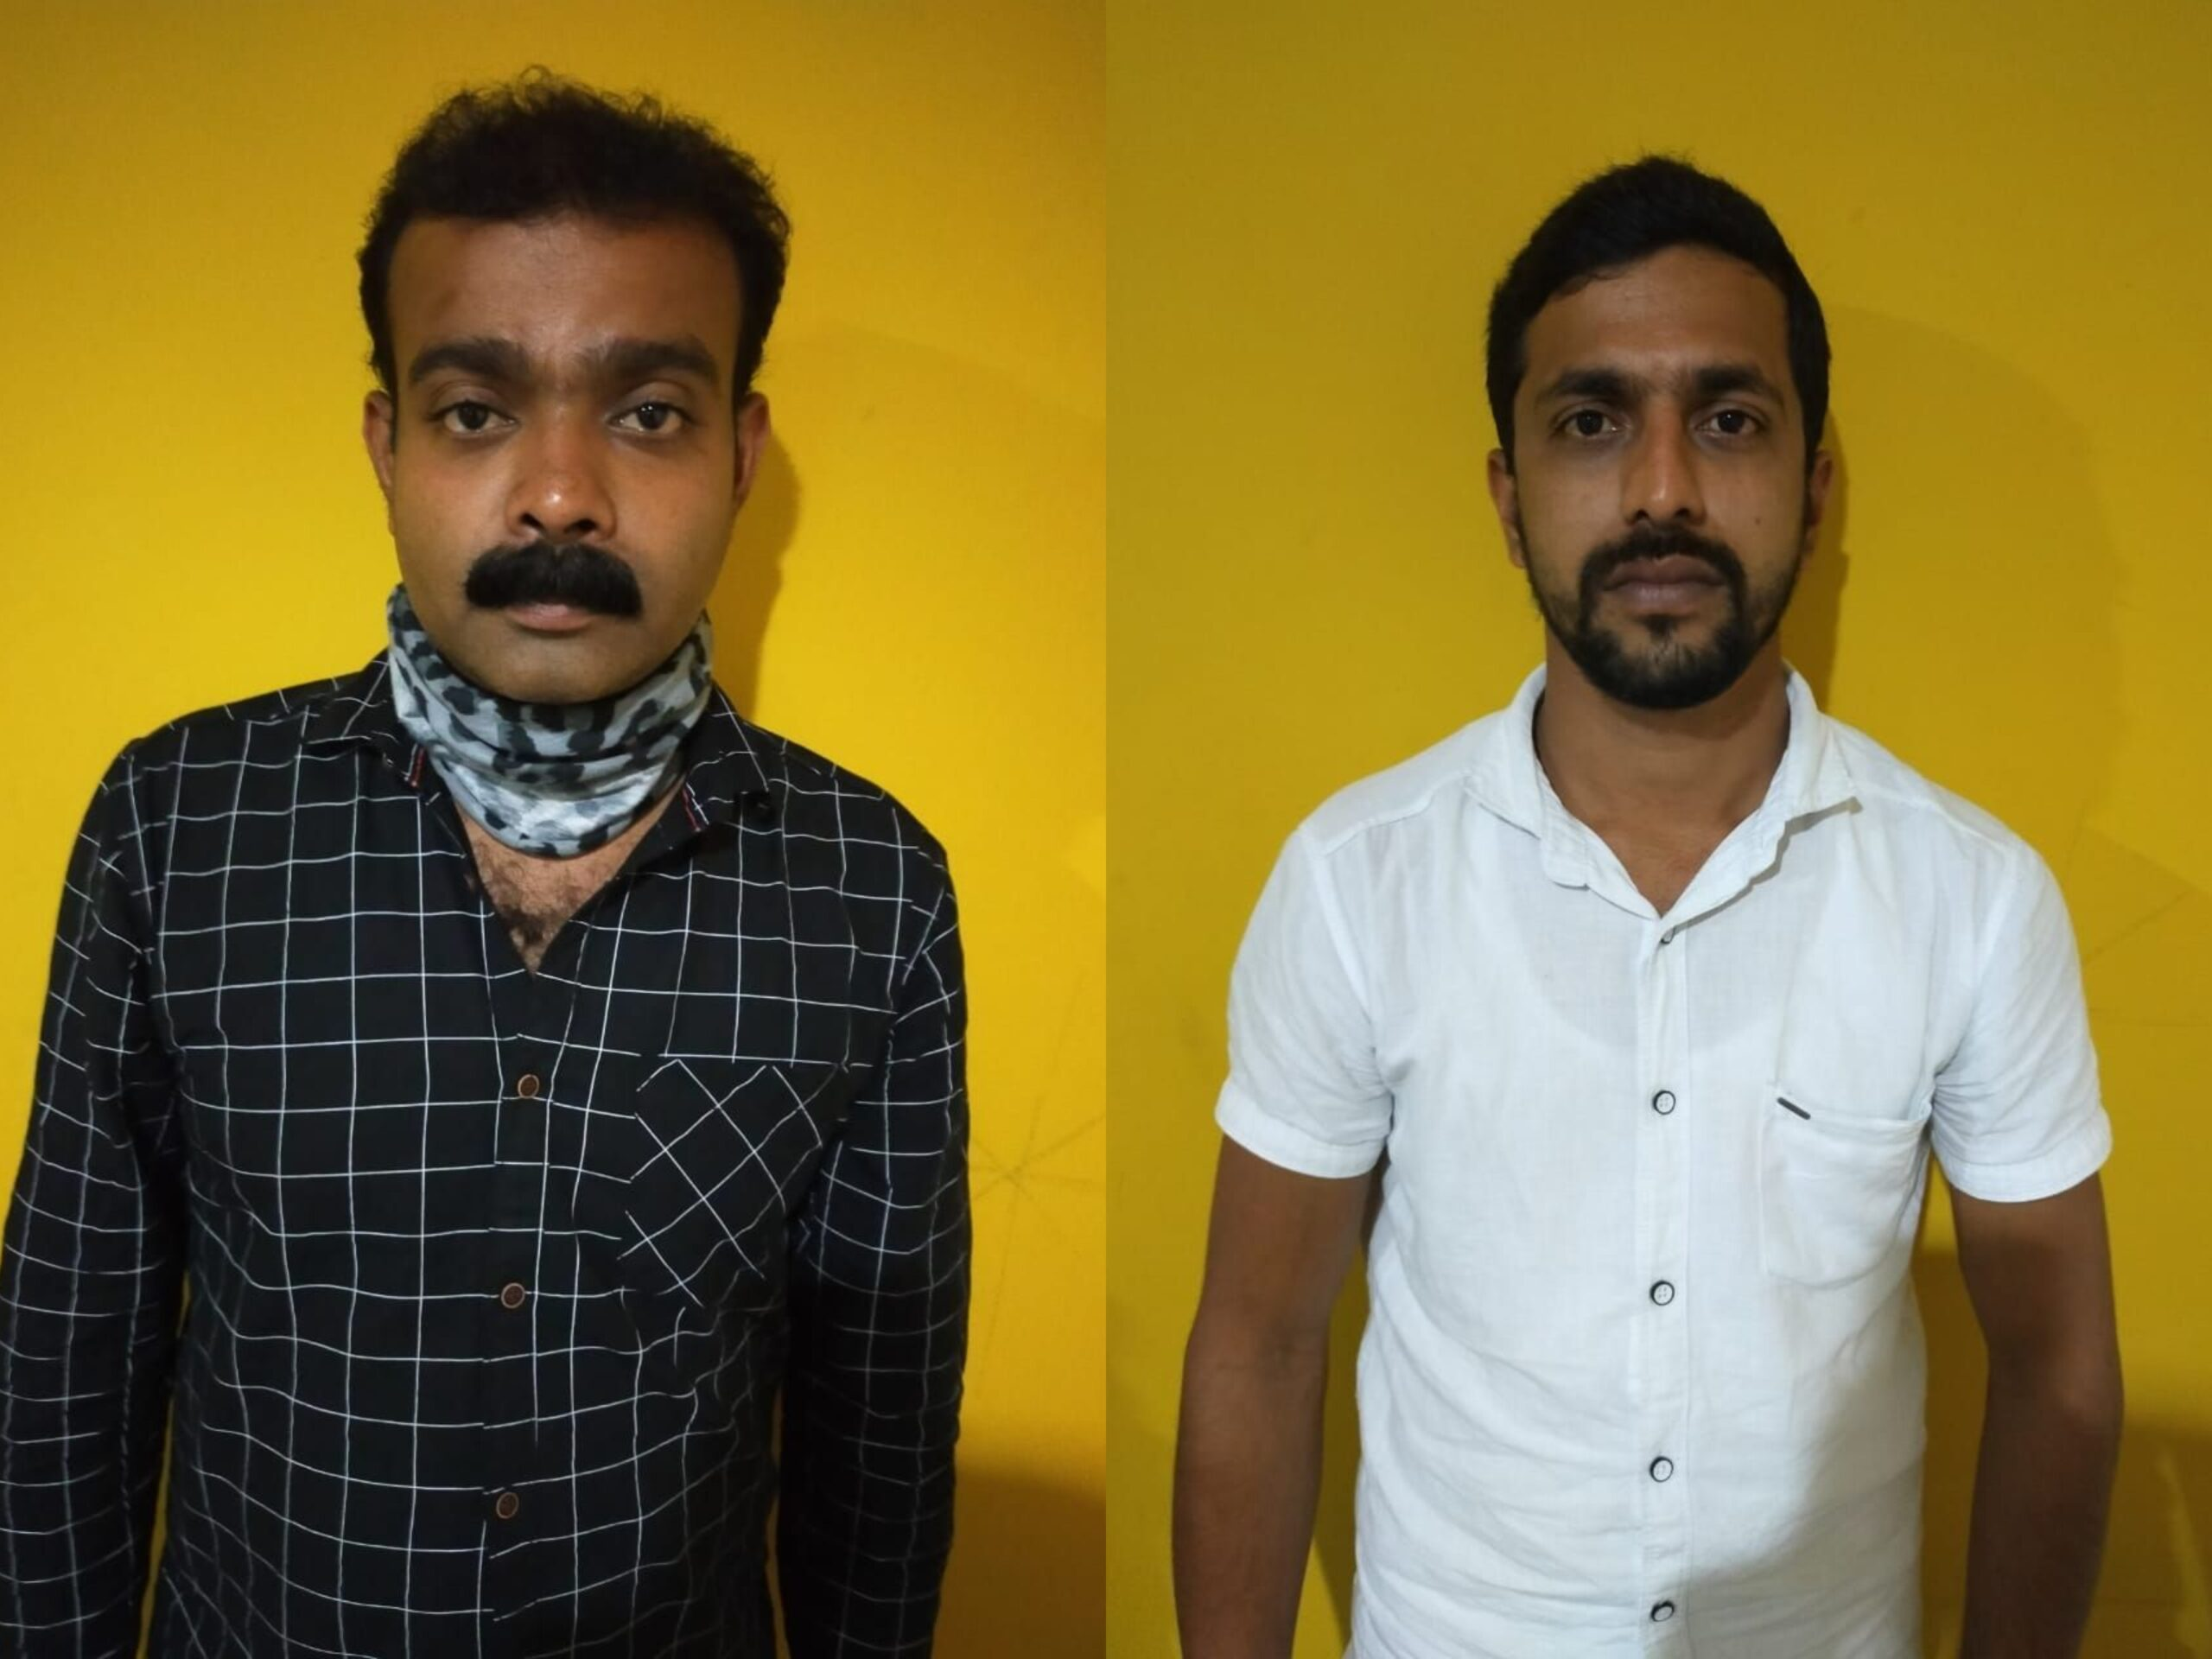 Bar owner's killing: 4 arrested      2 of the murder accused try to assault cops, are shot at